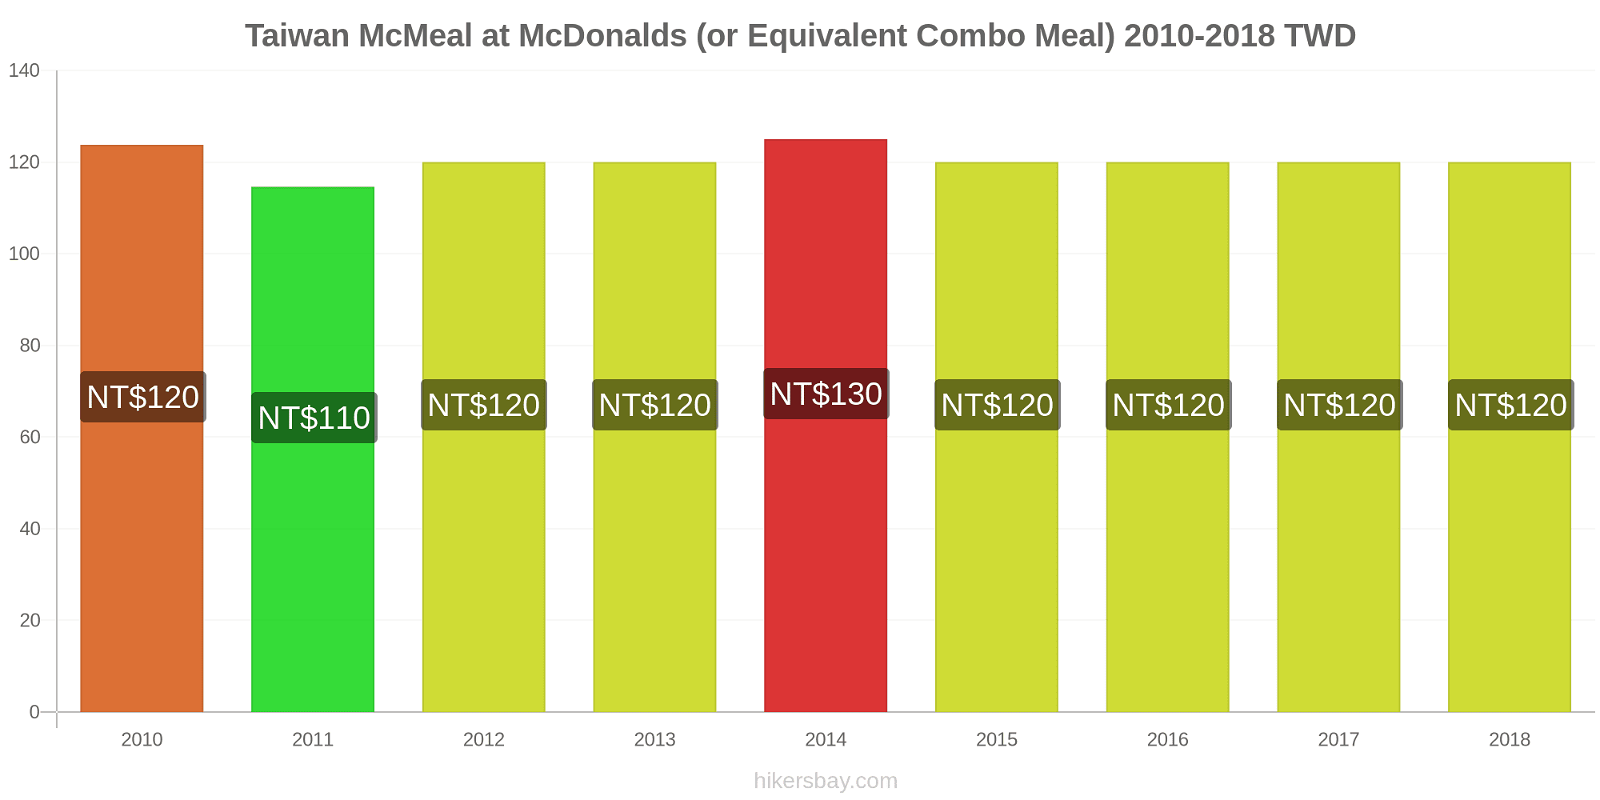 Taiwan price changes McMeal at McDonalds (or Equivalent Combo Meal) hikersbay.com